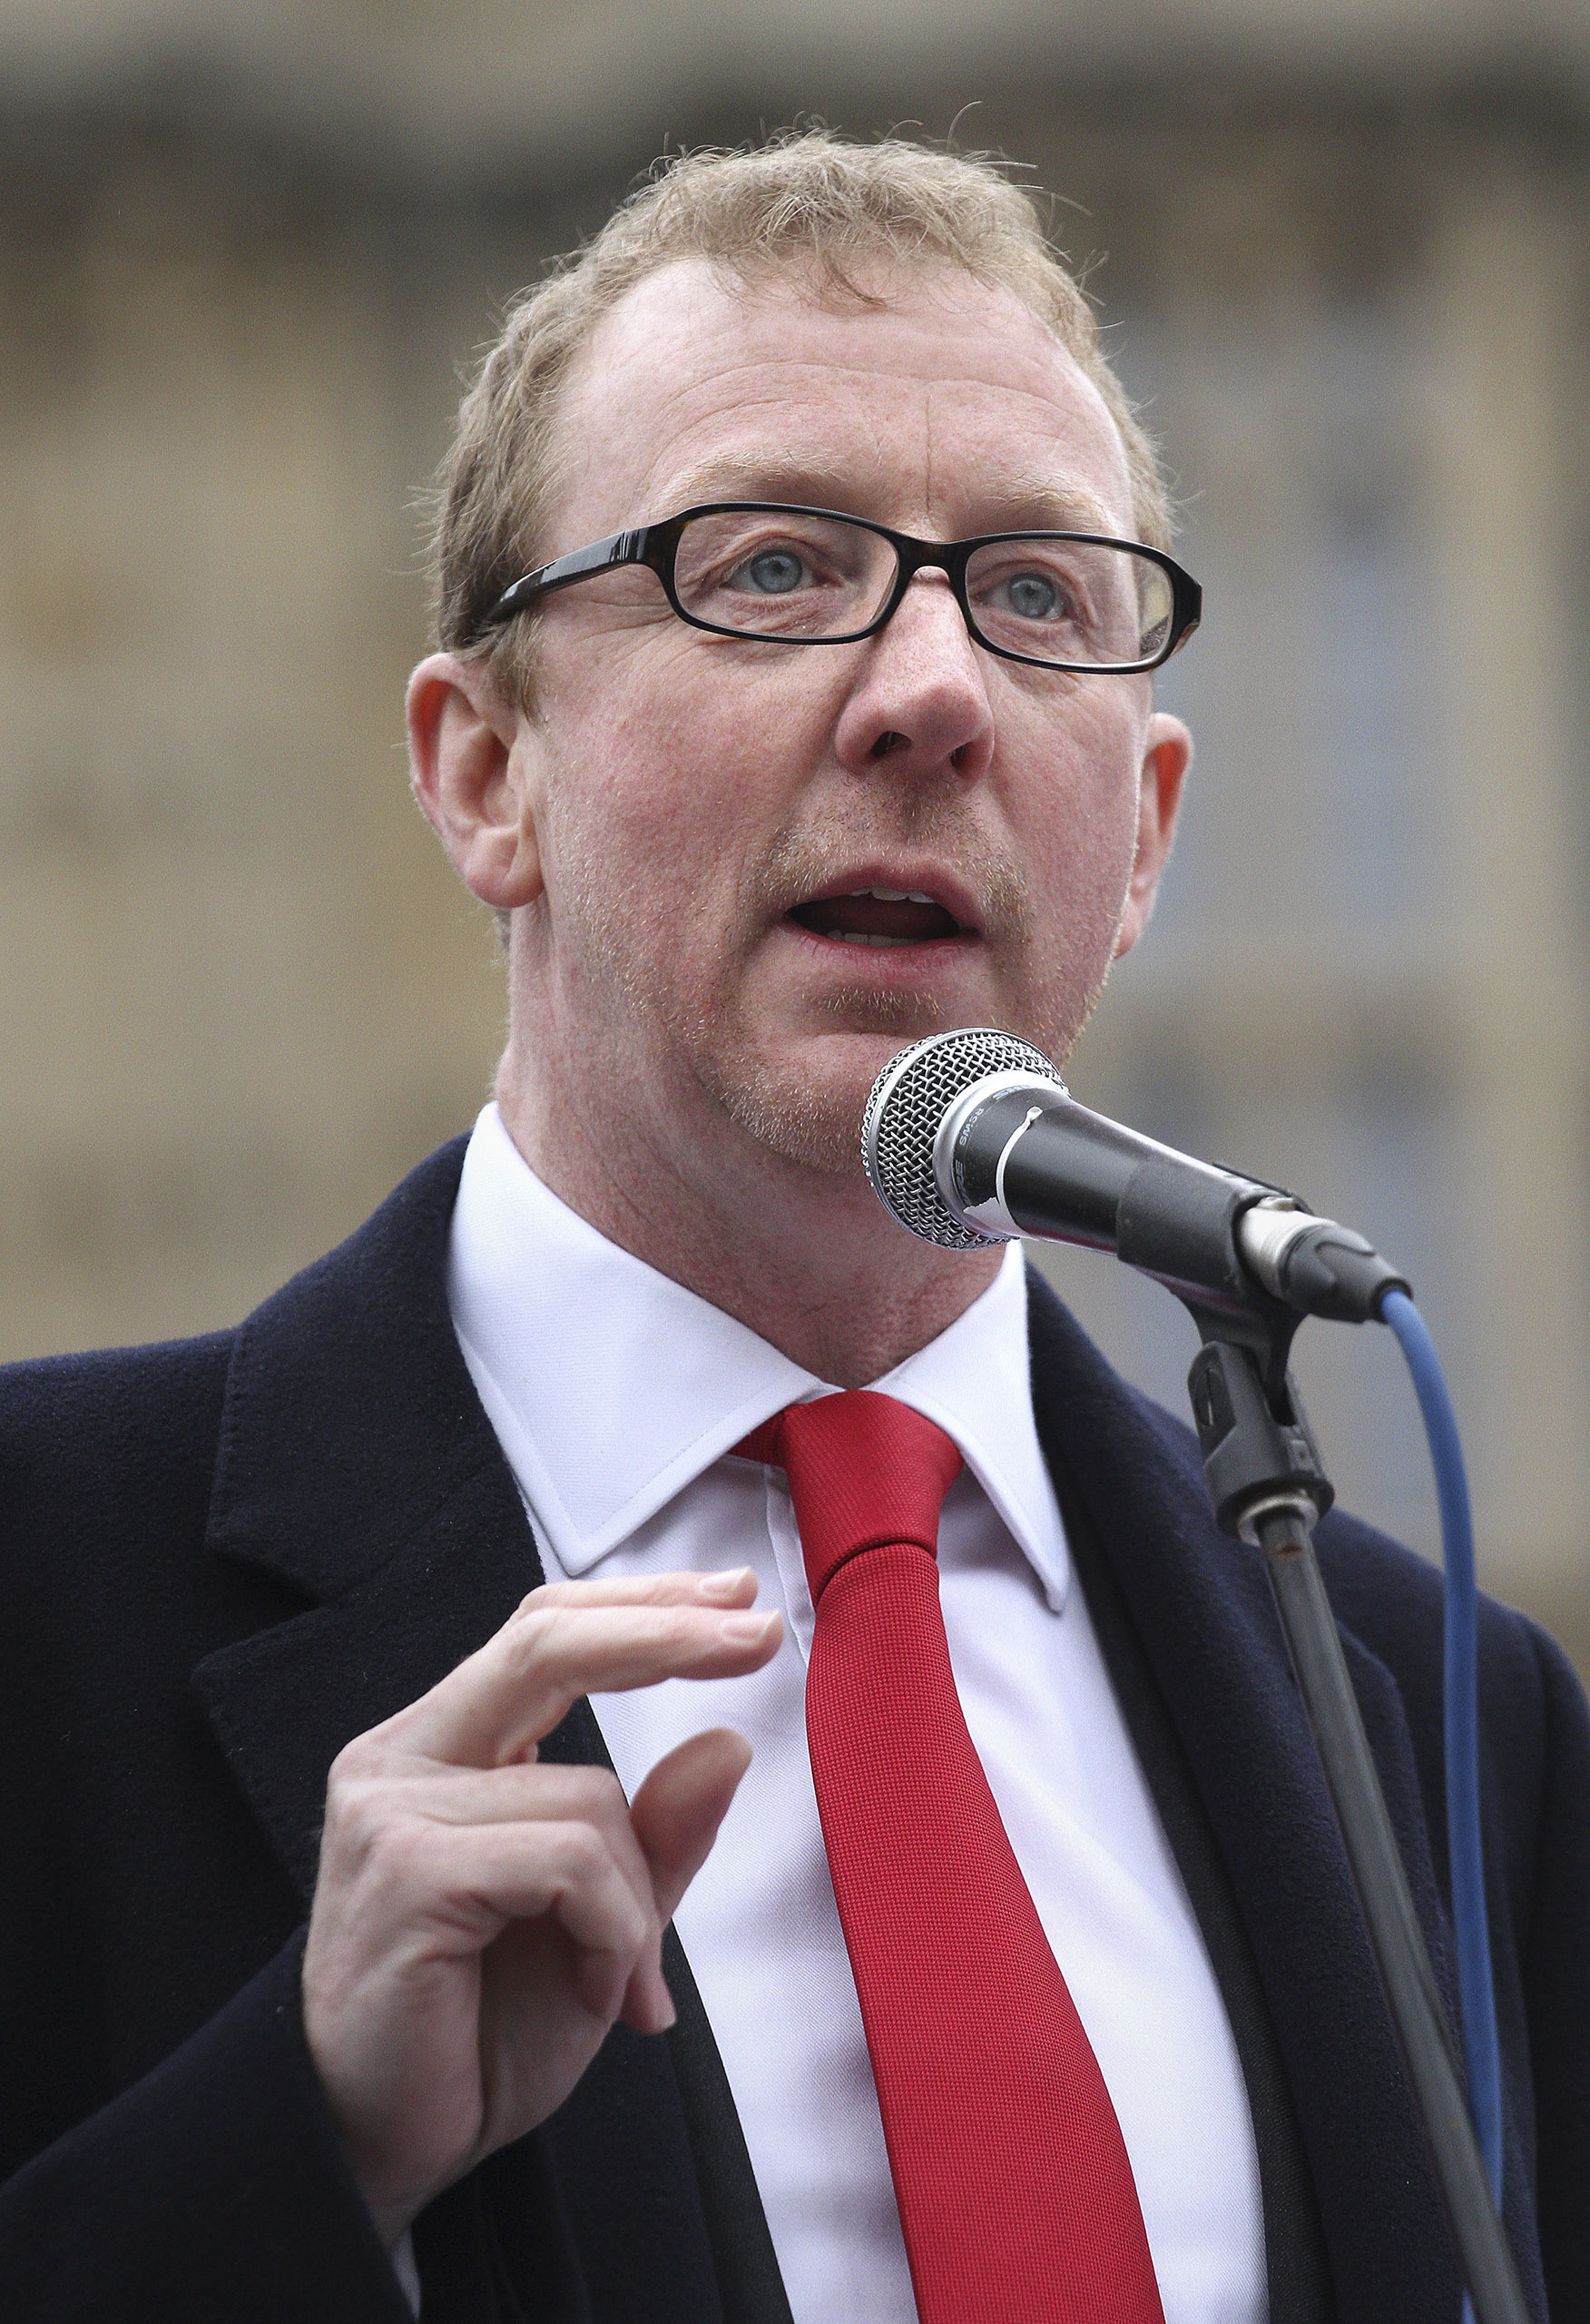 Dave Rowntree, the drummer from the band Blur, speaks outside the Houses of Parliament in London, May 22, 2013.